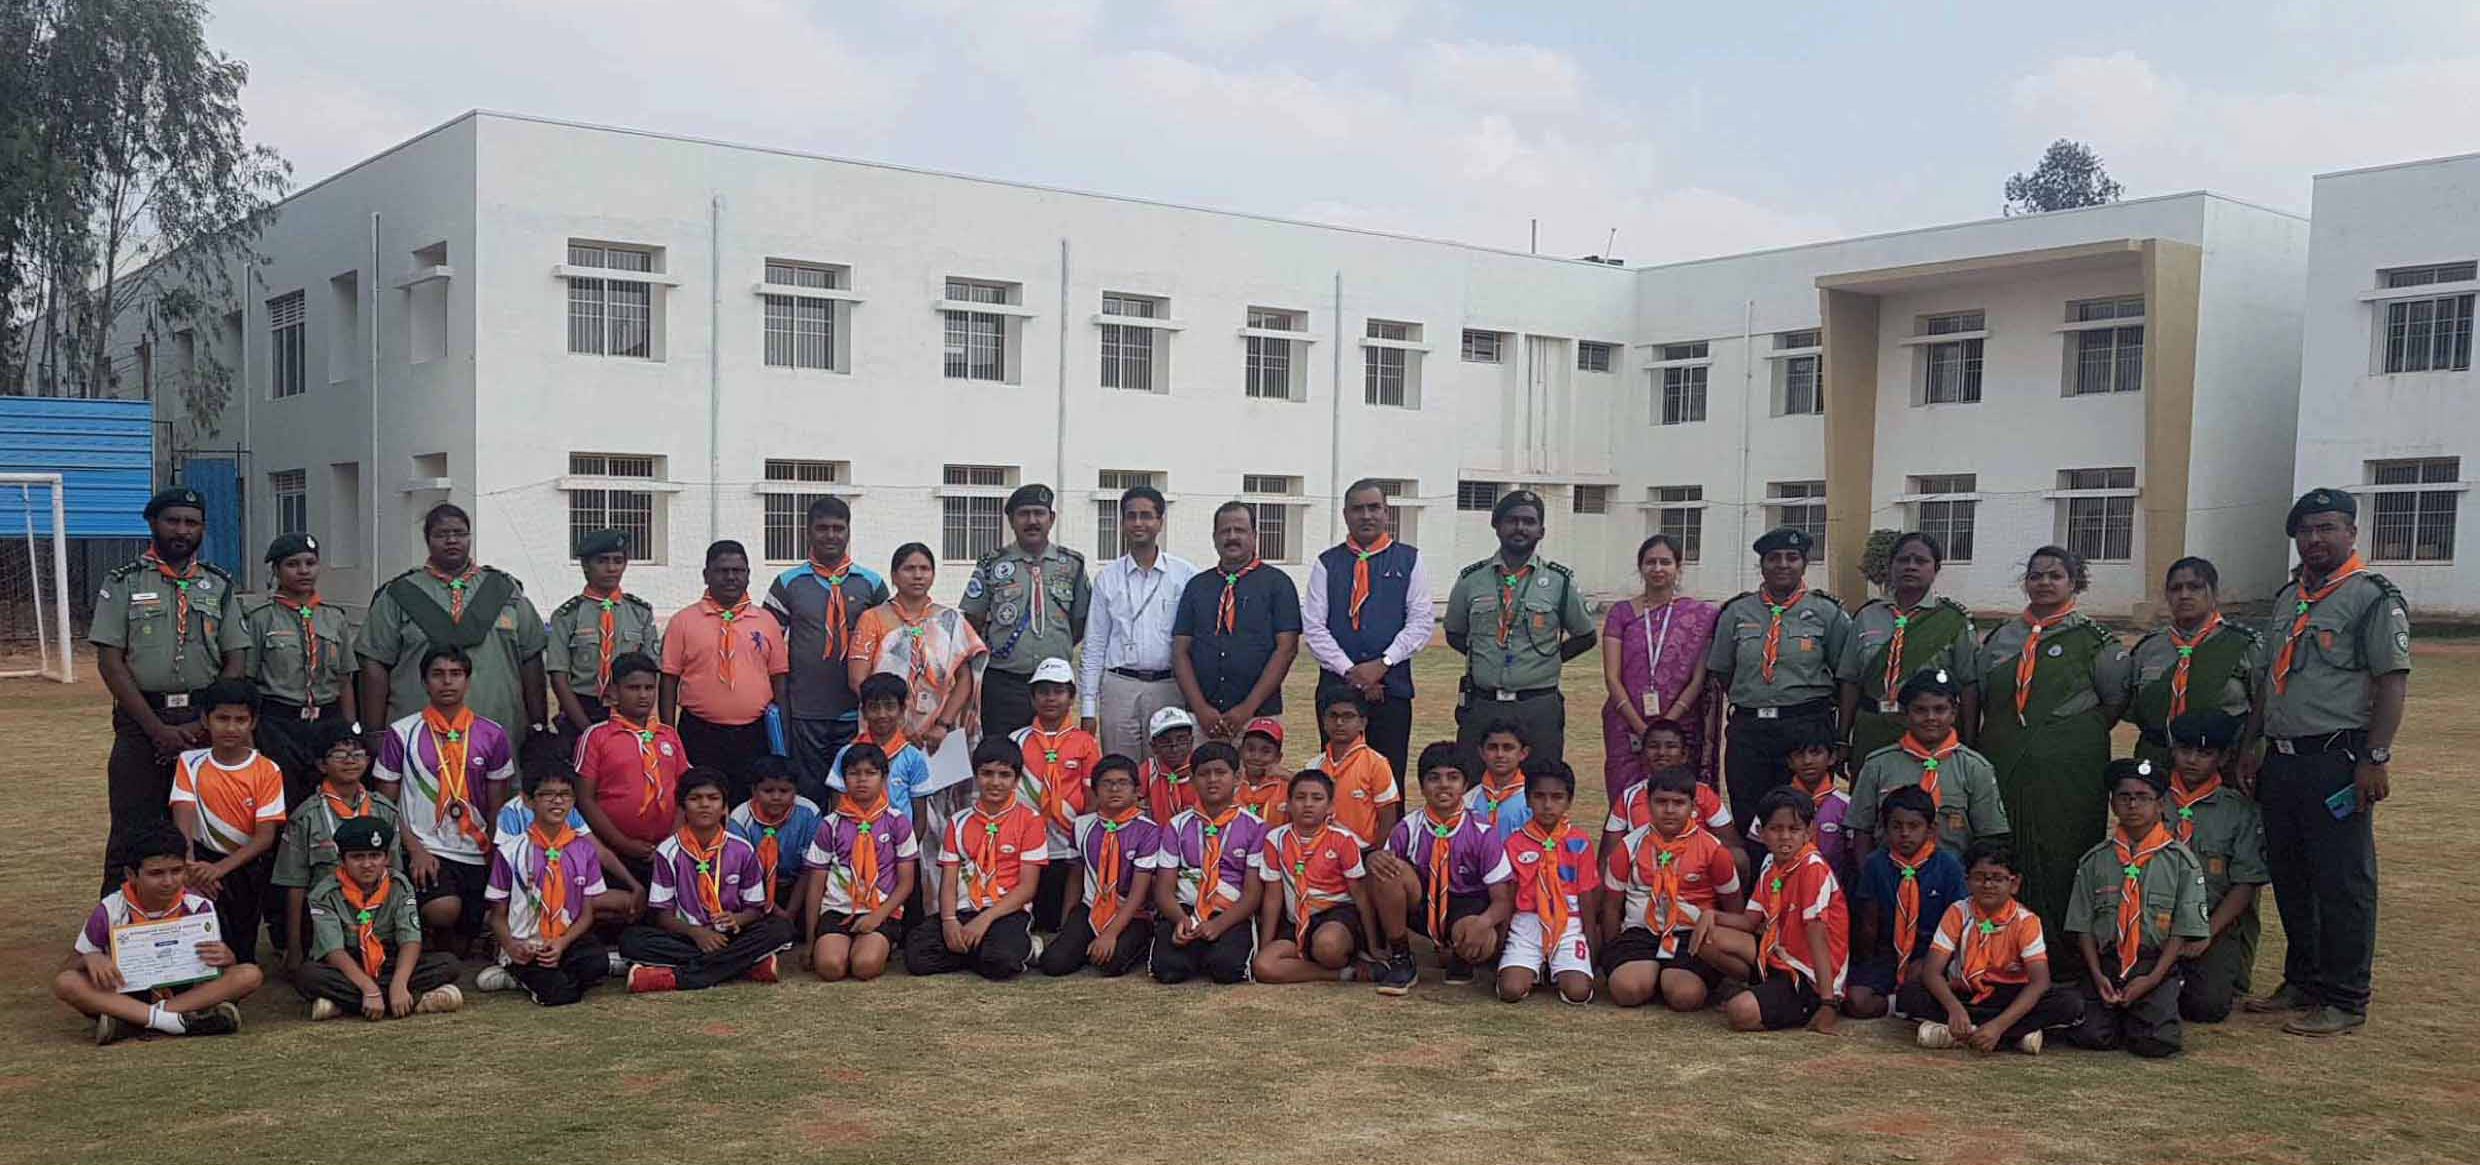 First batch of Hindustan Scouts and Guides with 65 students, felicitated